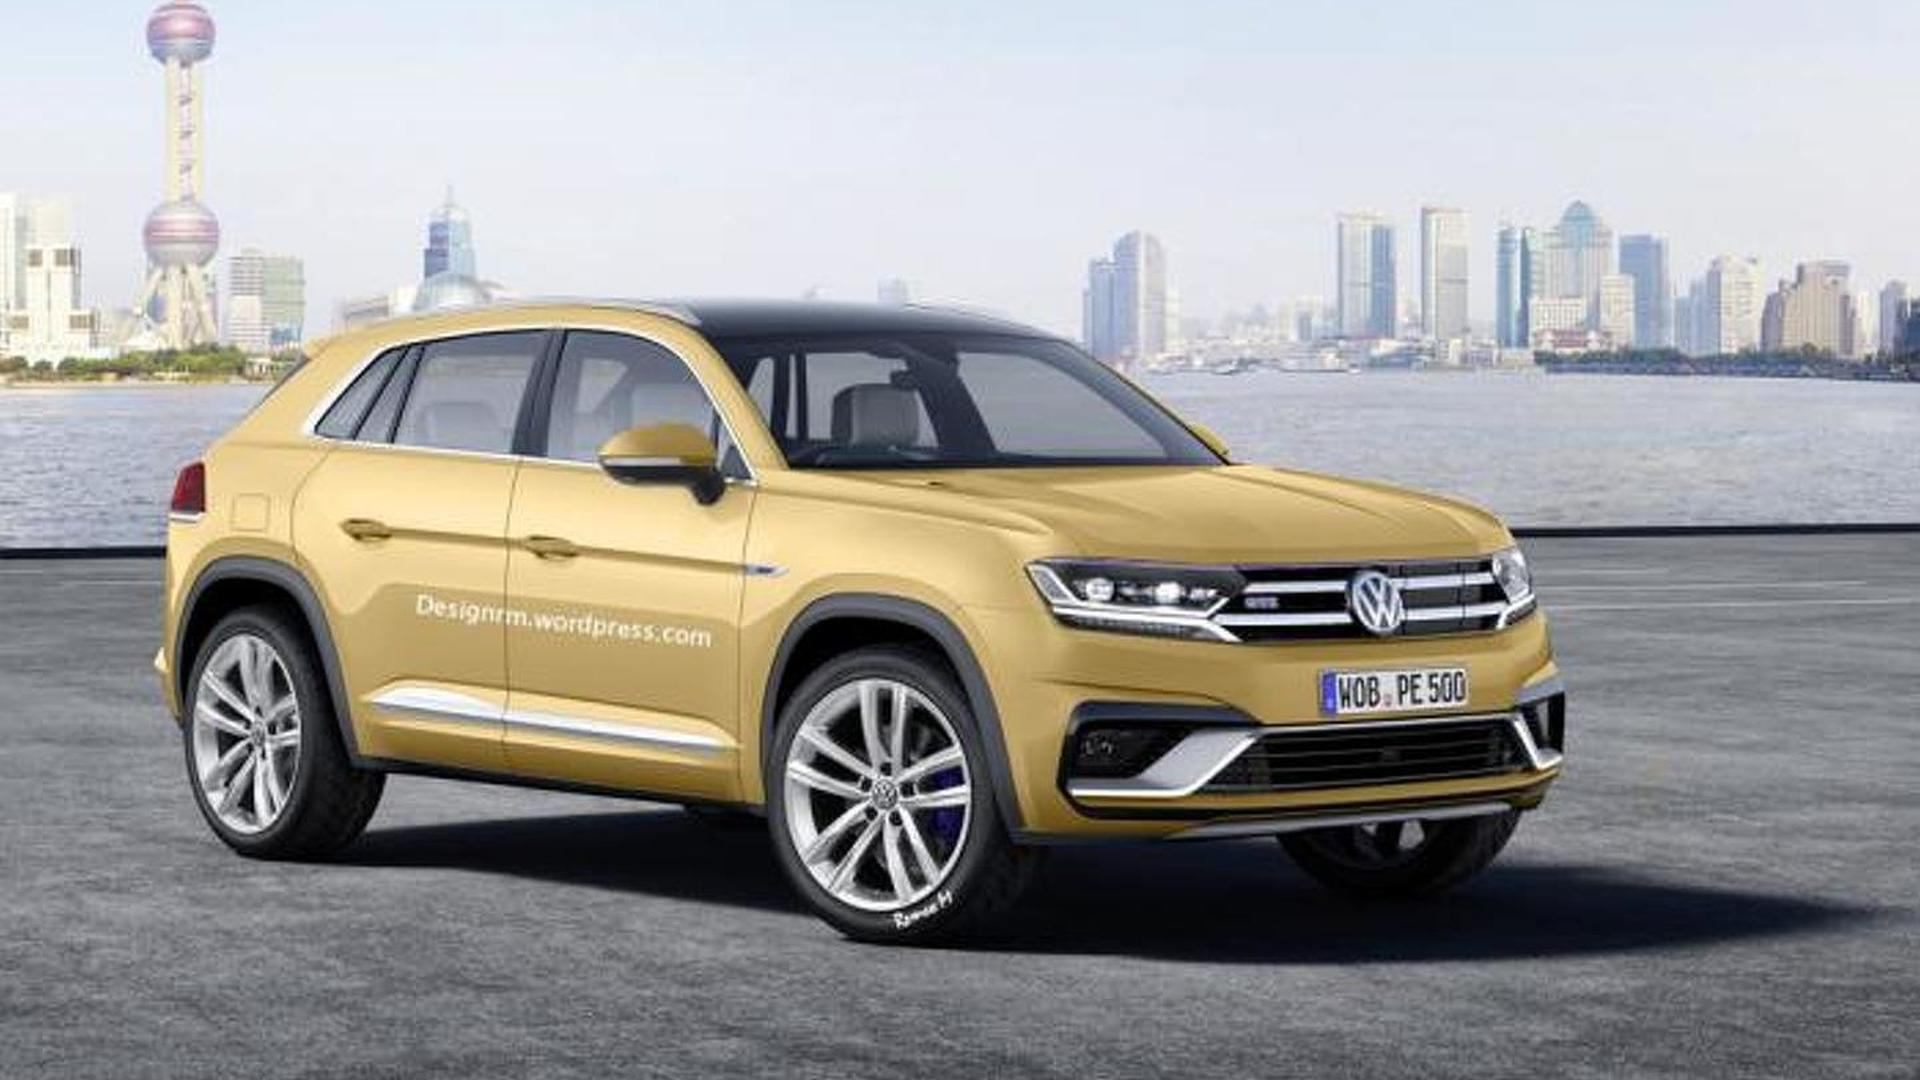 tiguan euro volkswagen turbo preview vw edition frankfurt generation of driving r suv line crossover the next behold